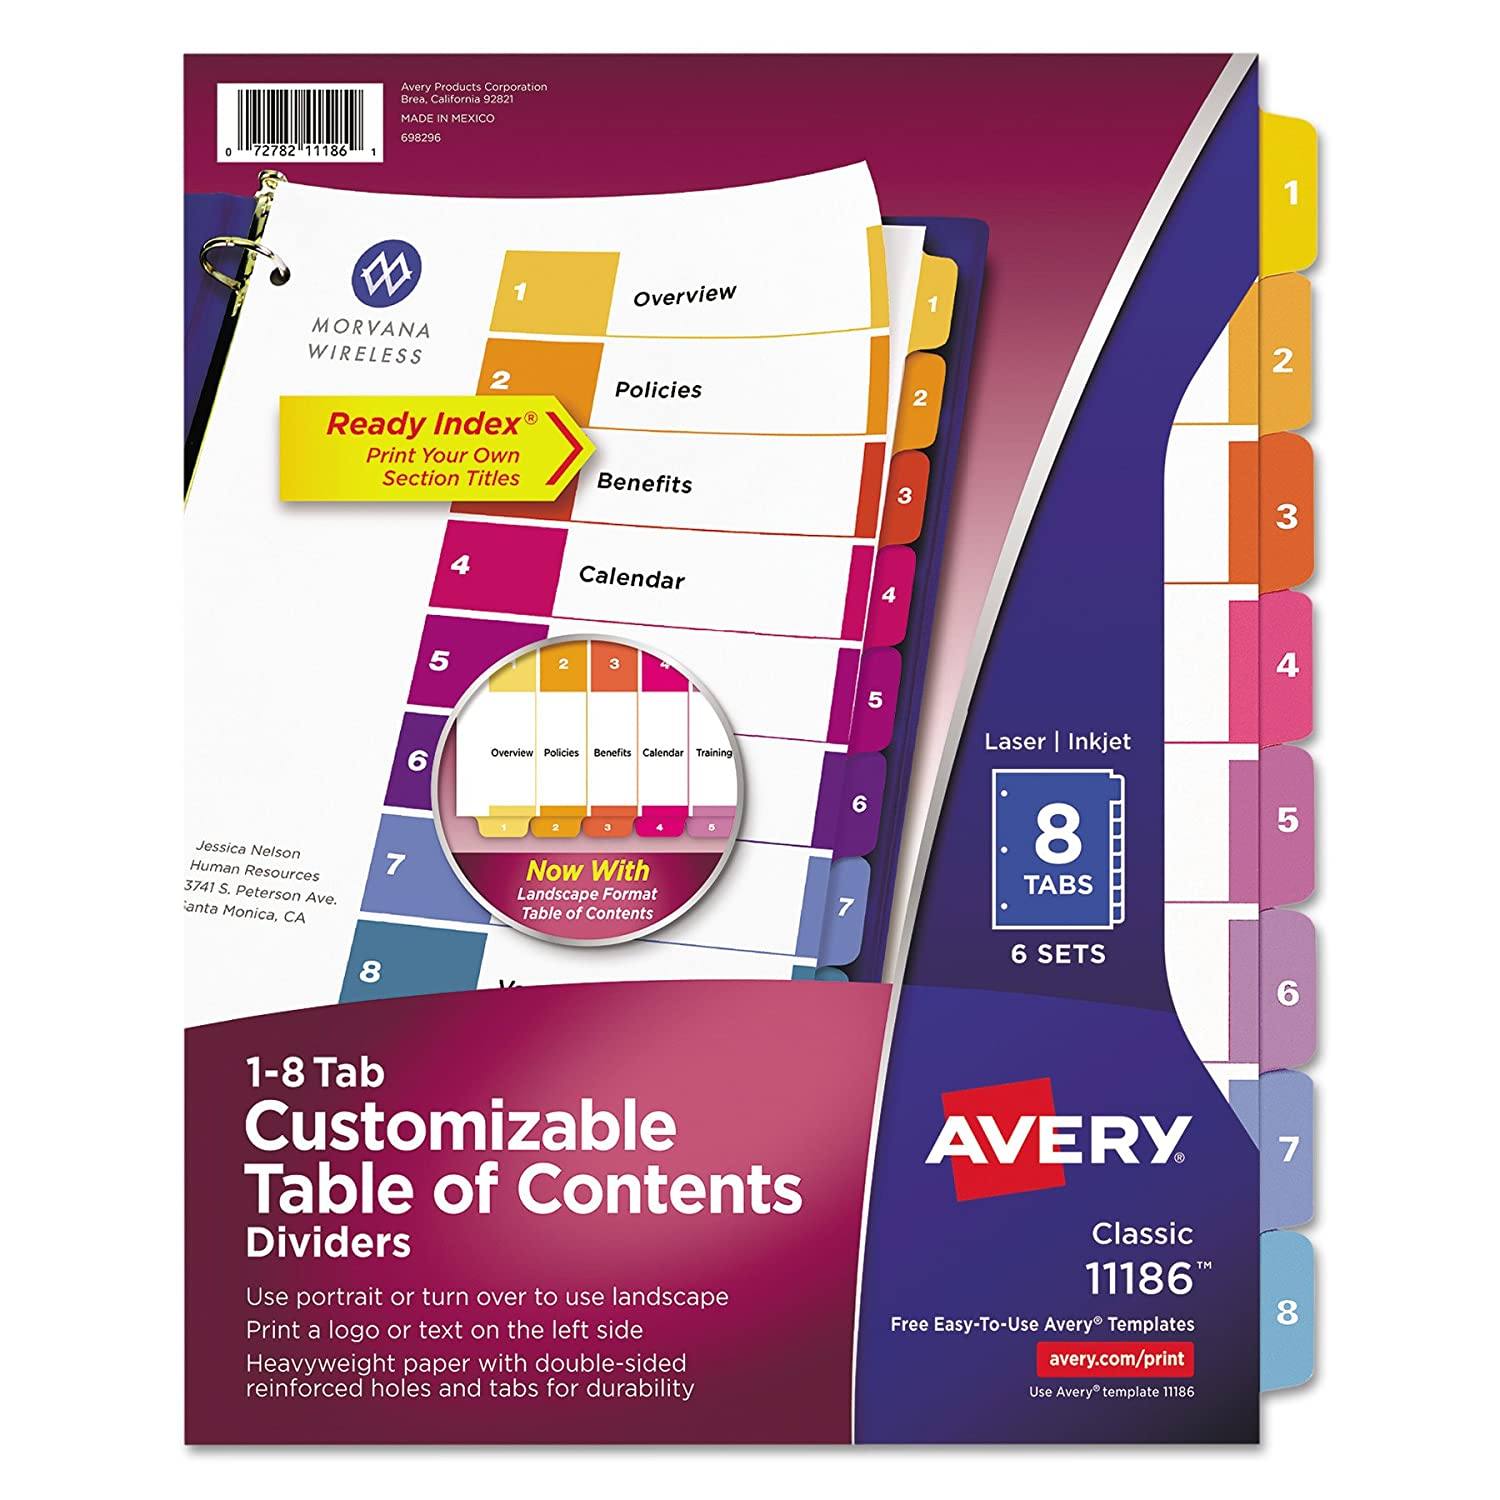 Amazoncom Avery Ready Index Table Of Contents Dividers Tab Set - 8 tab divider template